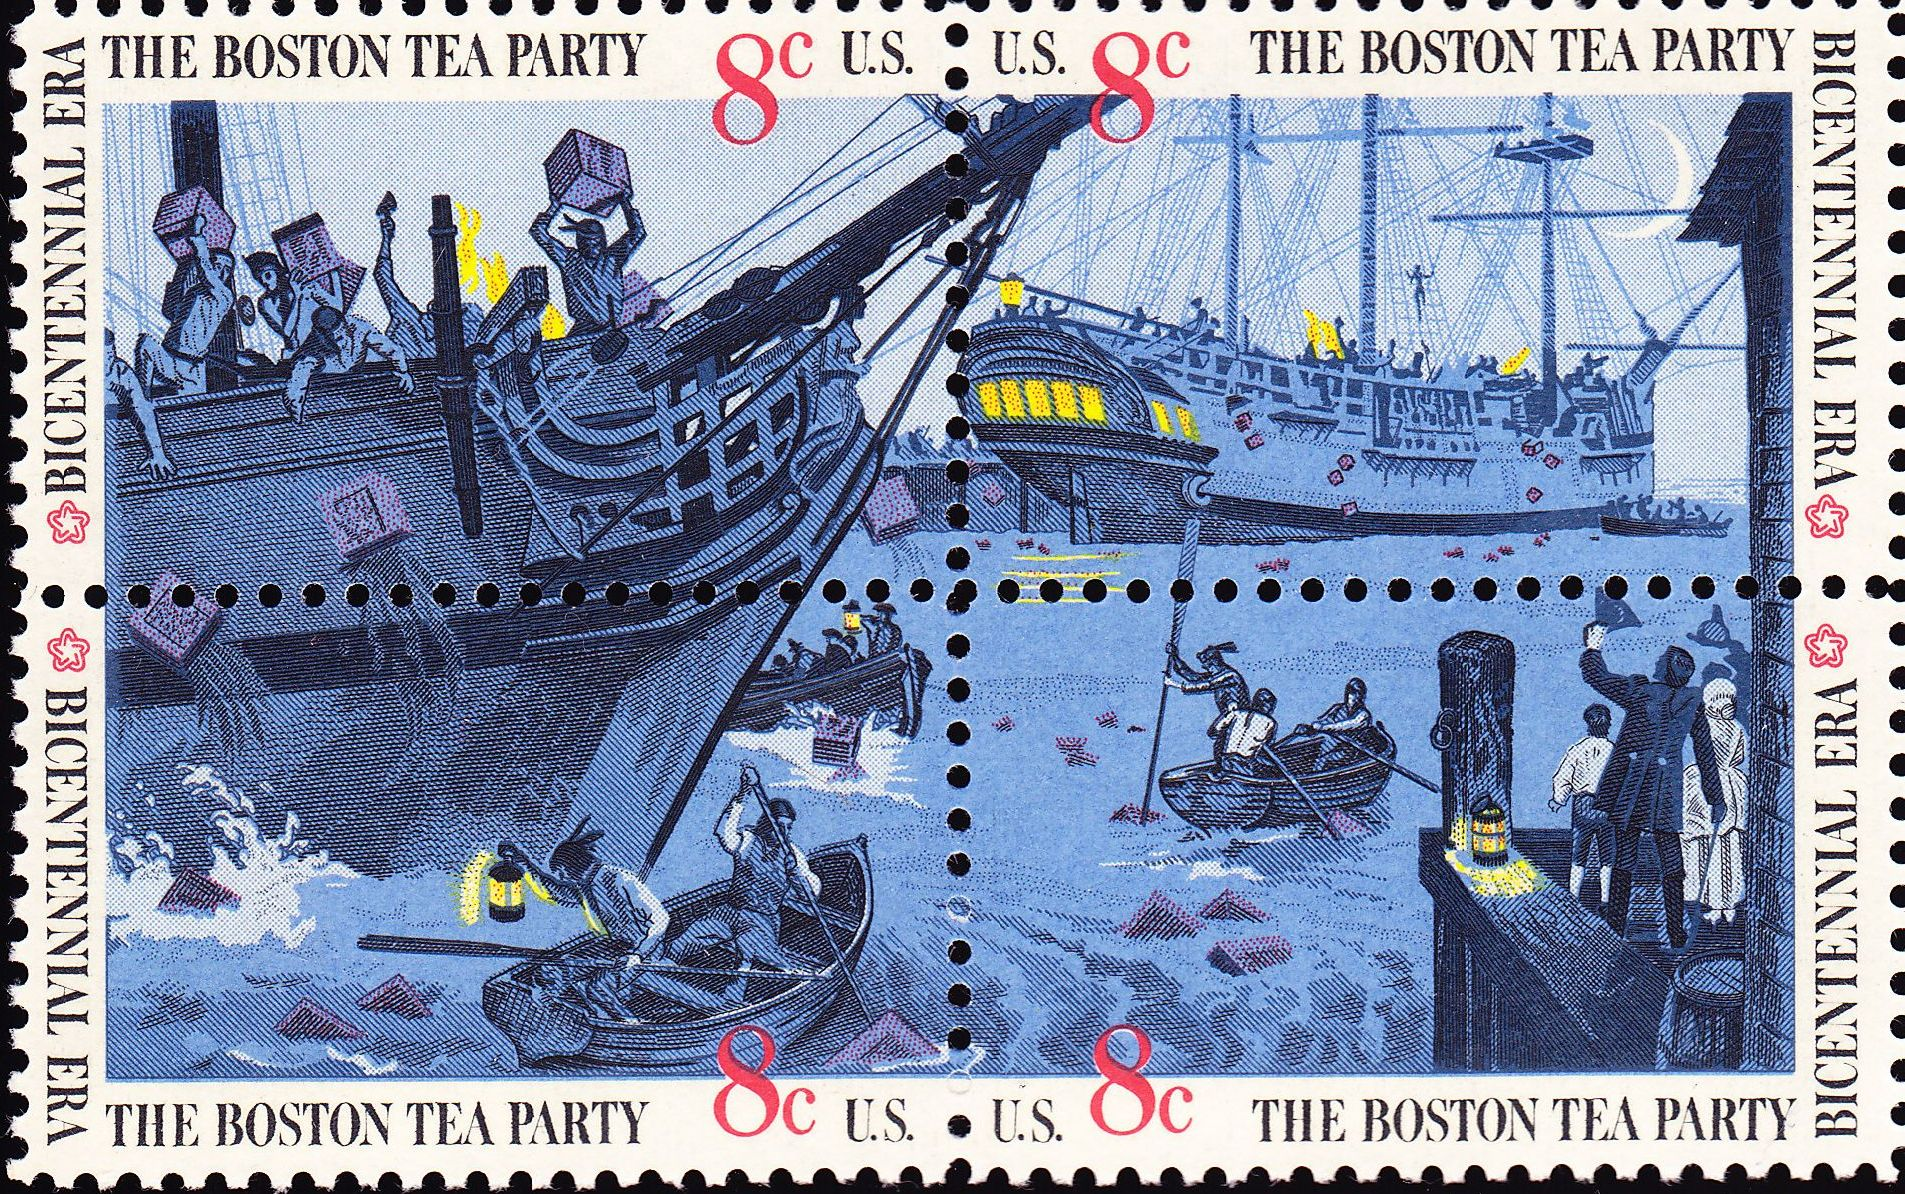 Boston Tea Party, U.S. stamp, 1973